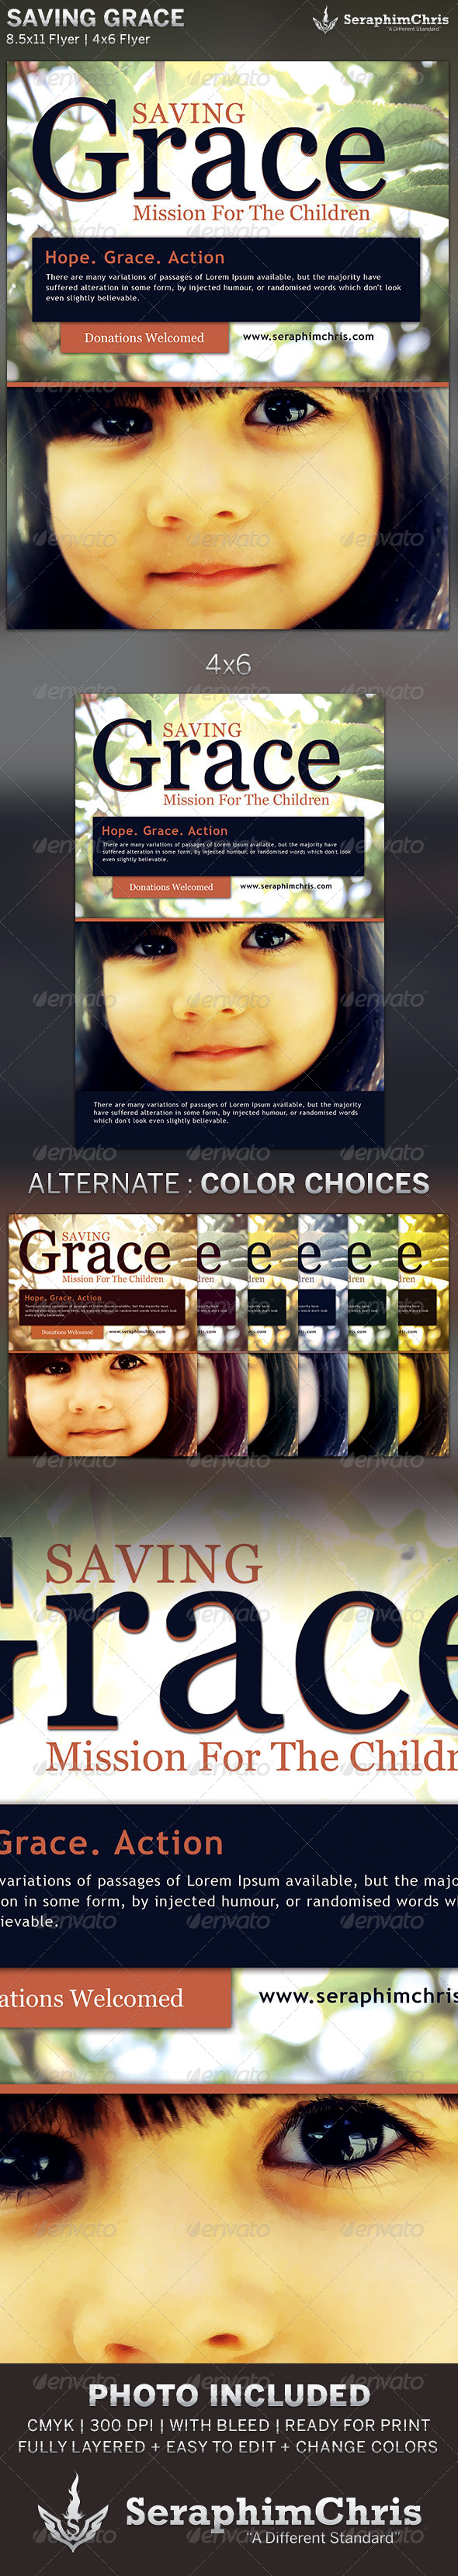 GraphicRiver Saving Grace Church Charity Flyer Template 6238872